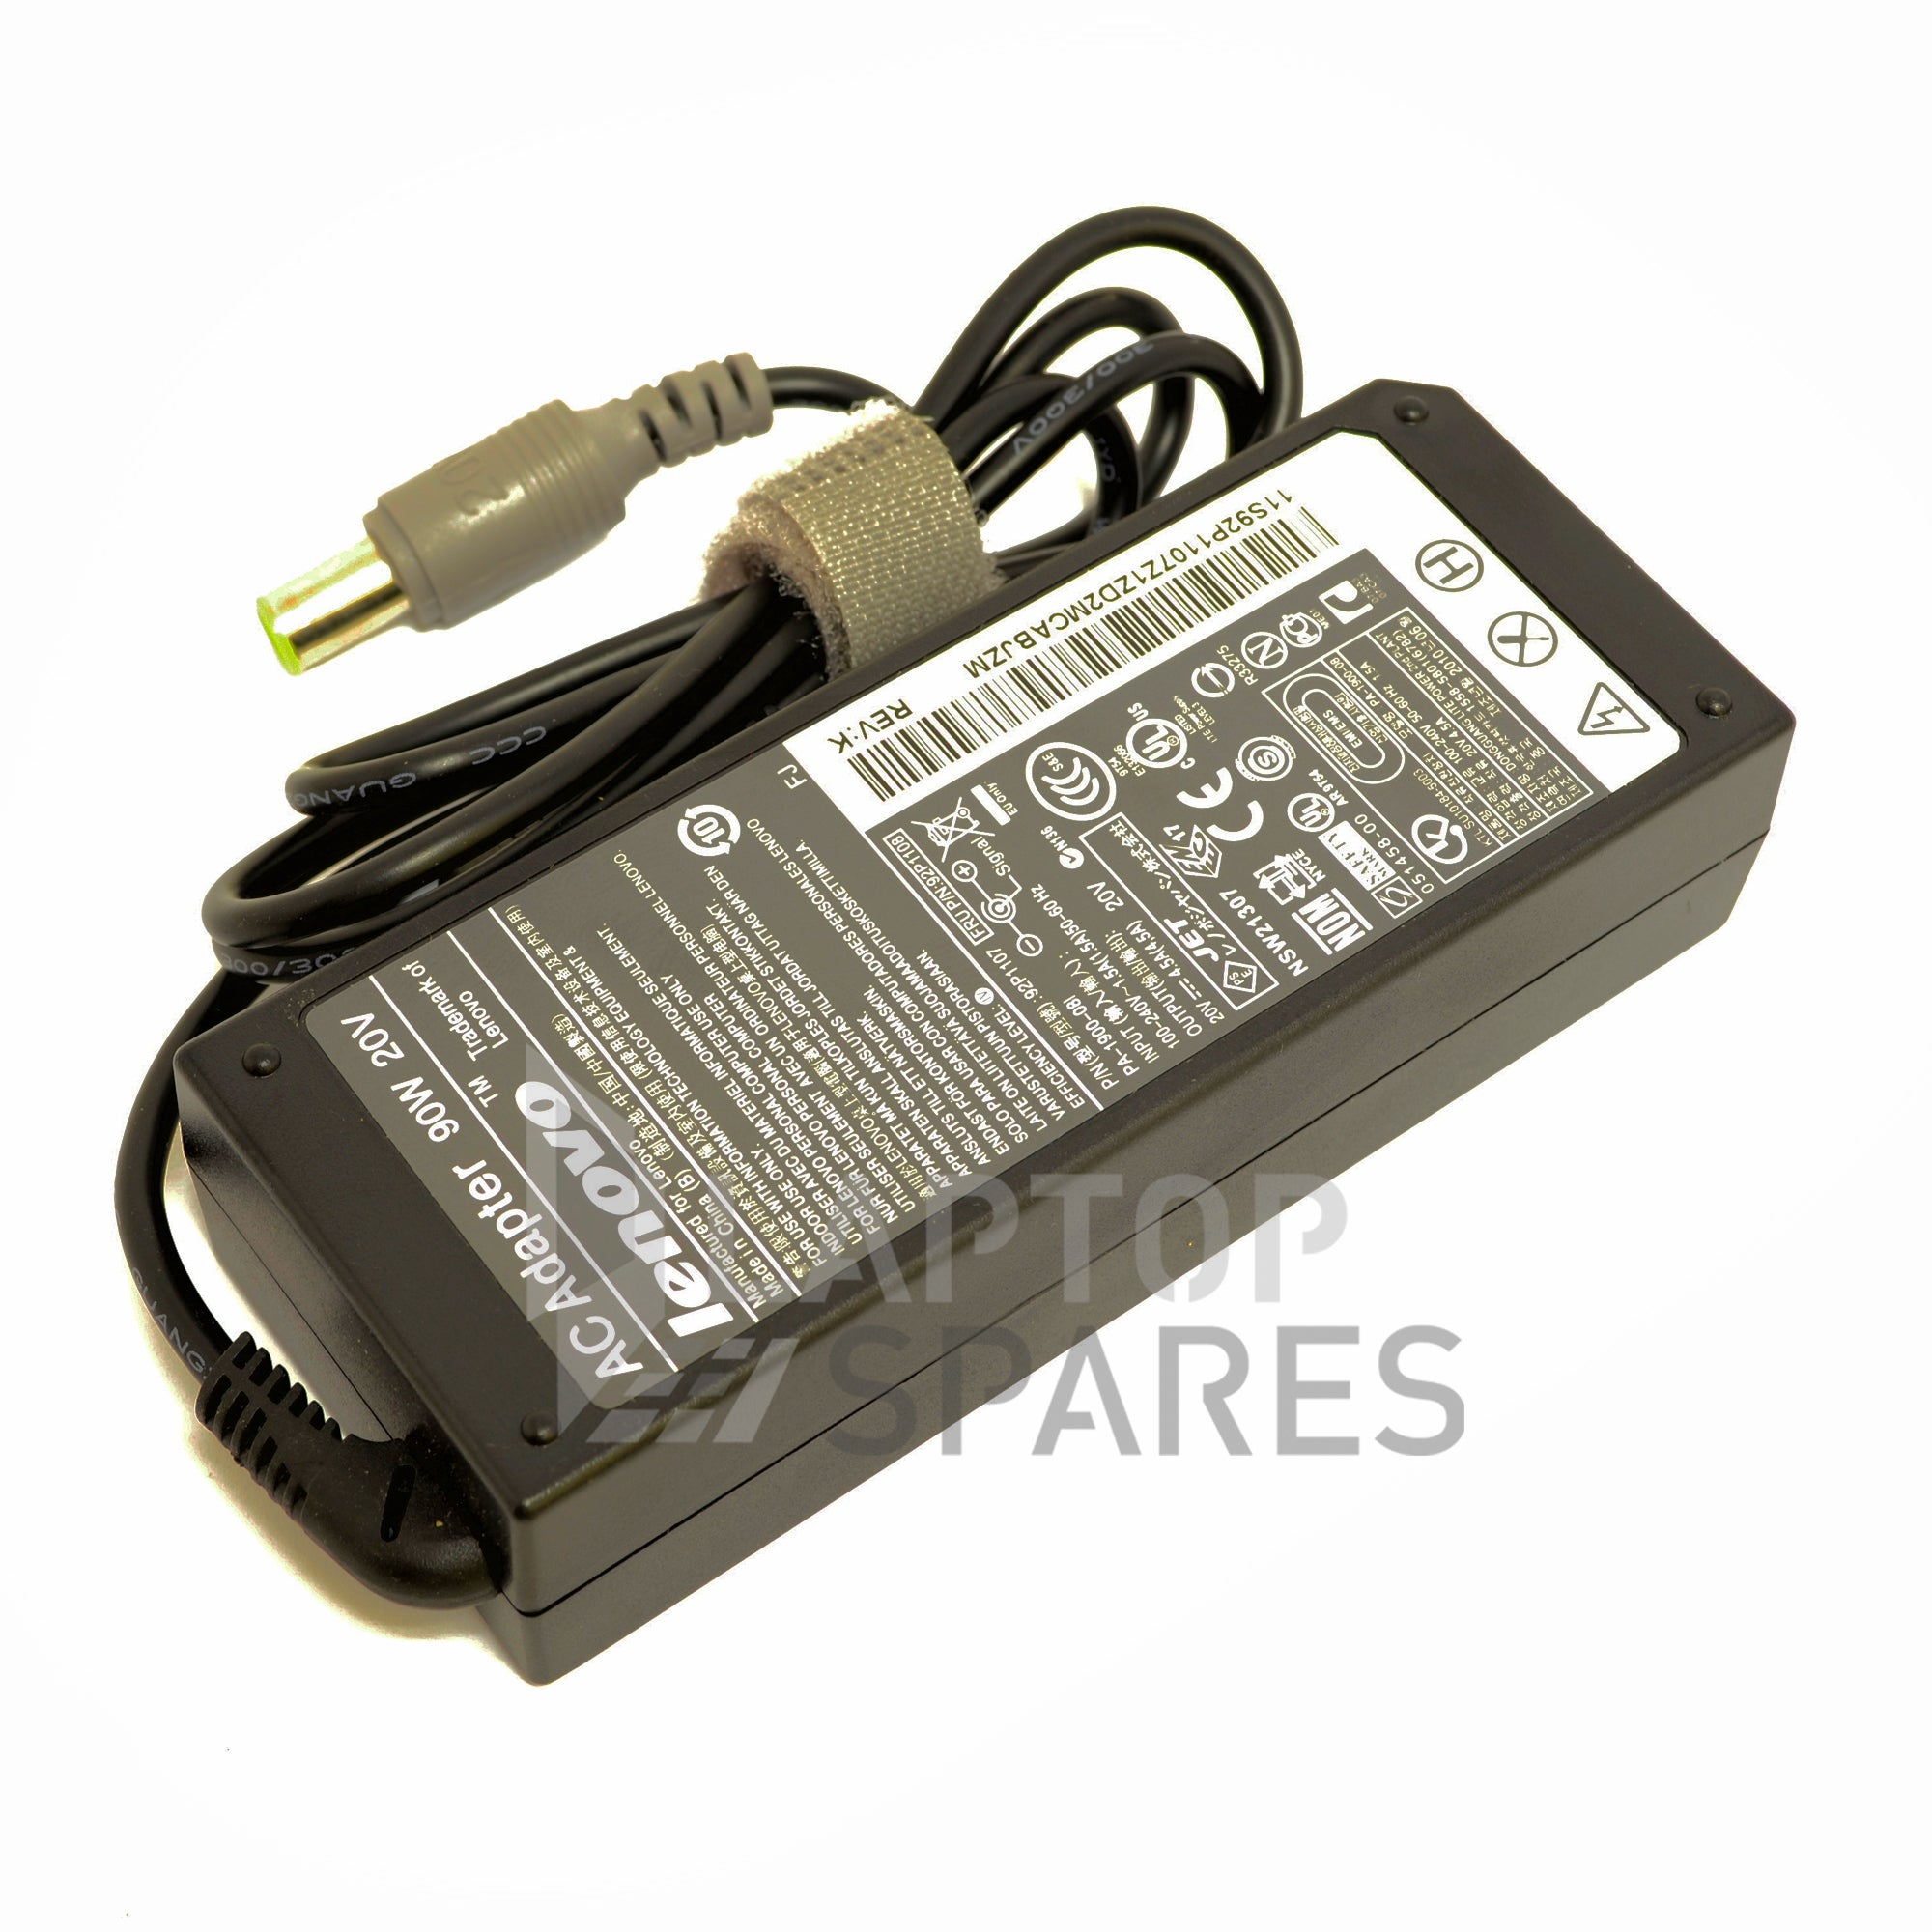 Lenovo ThinkPad  Z60m 2531 25311PU Laptop AC Adapter Charger